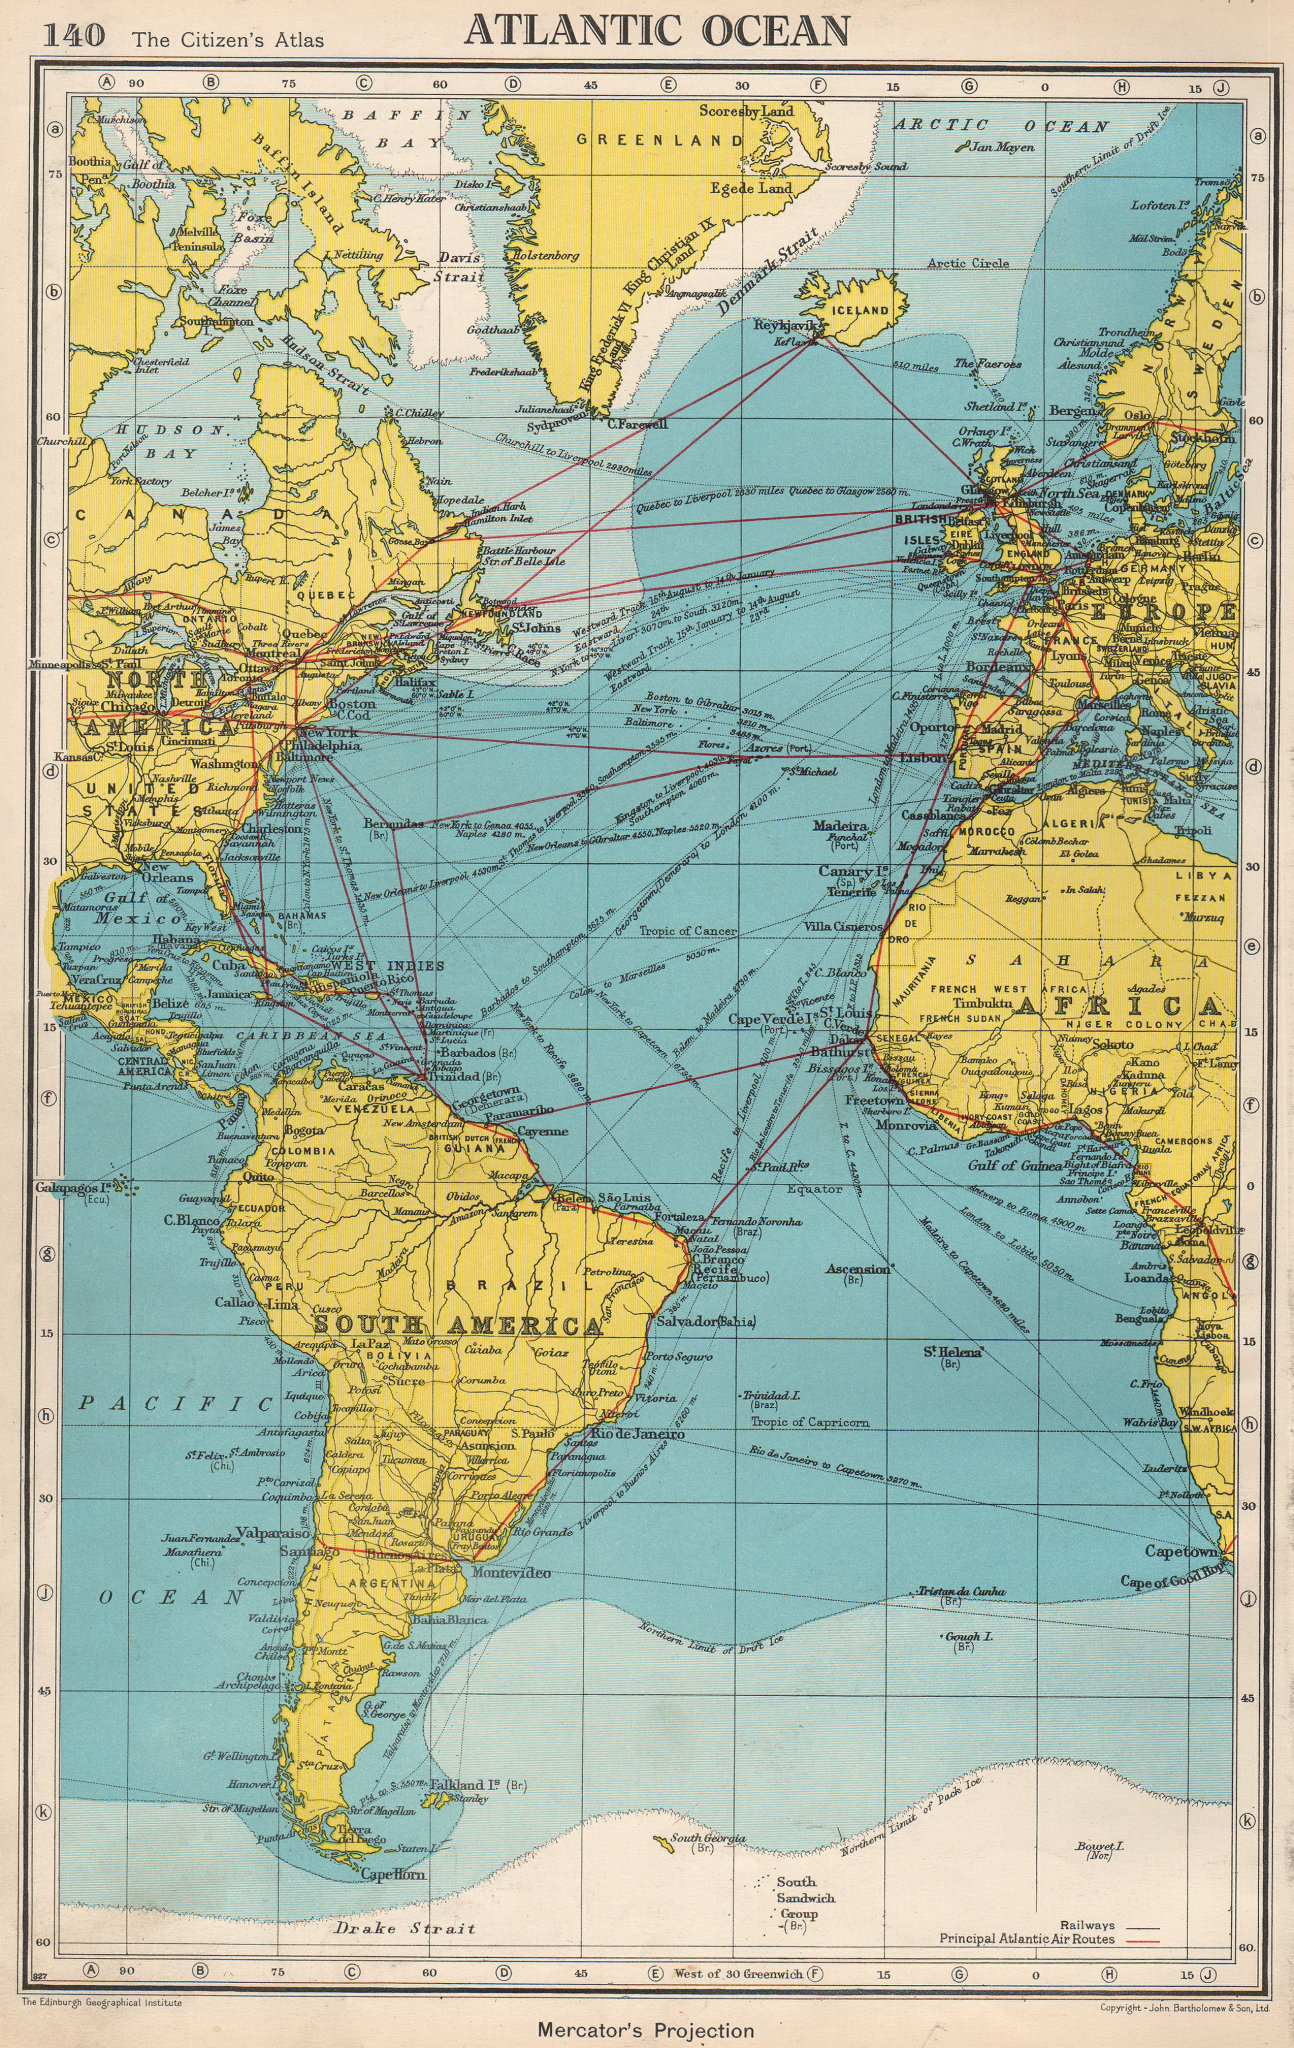 Associate Product ATLANTIC OCEAN. Shows main air & shipping routes, drift/pack ice limits 1952 map